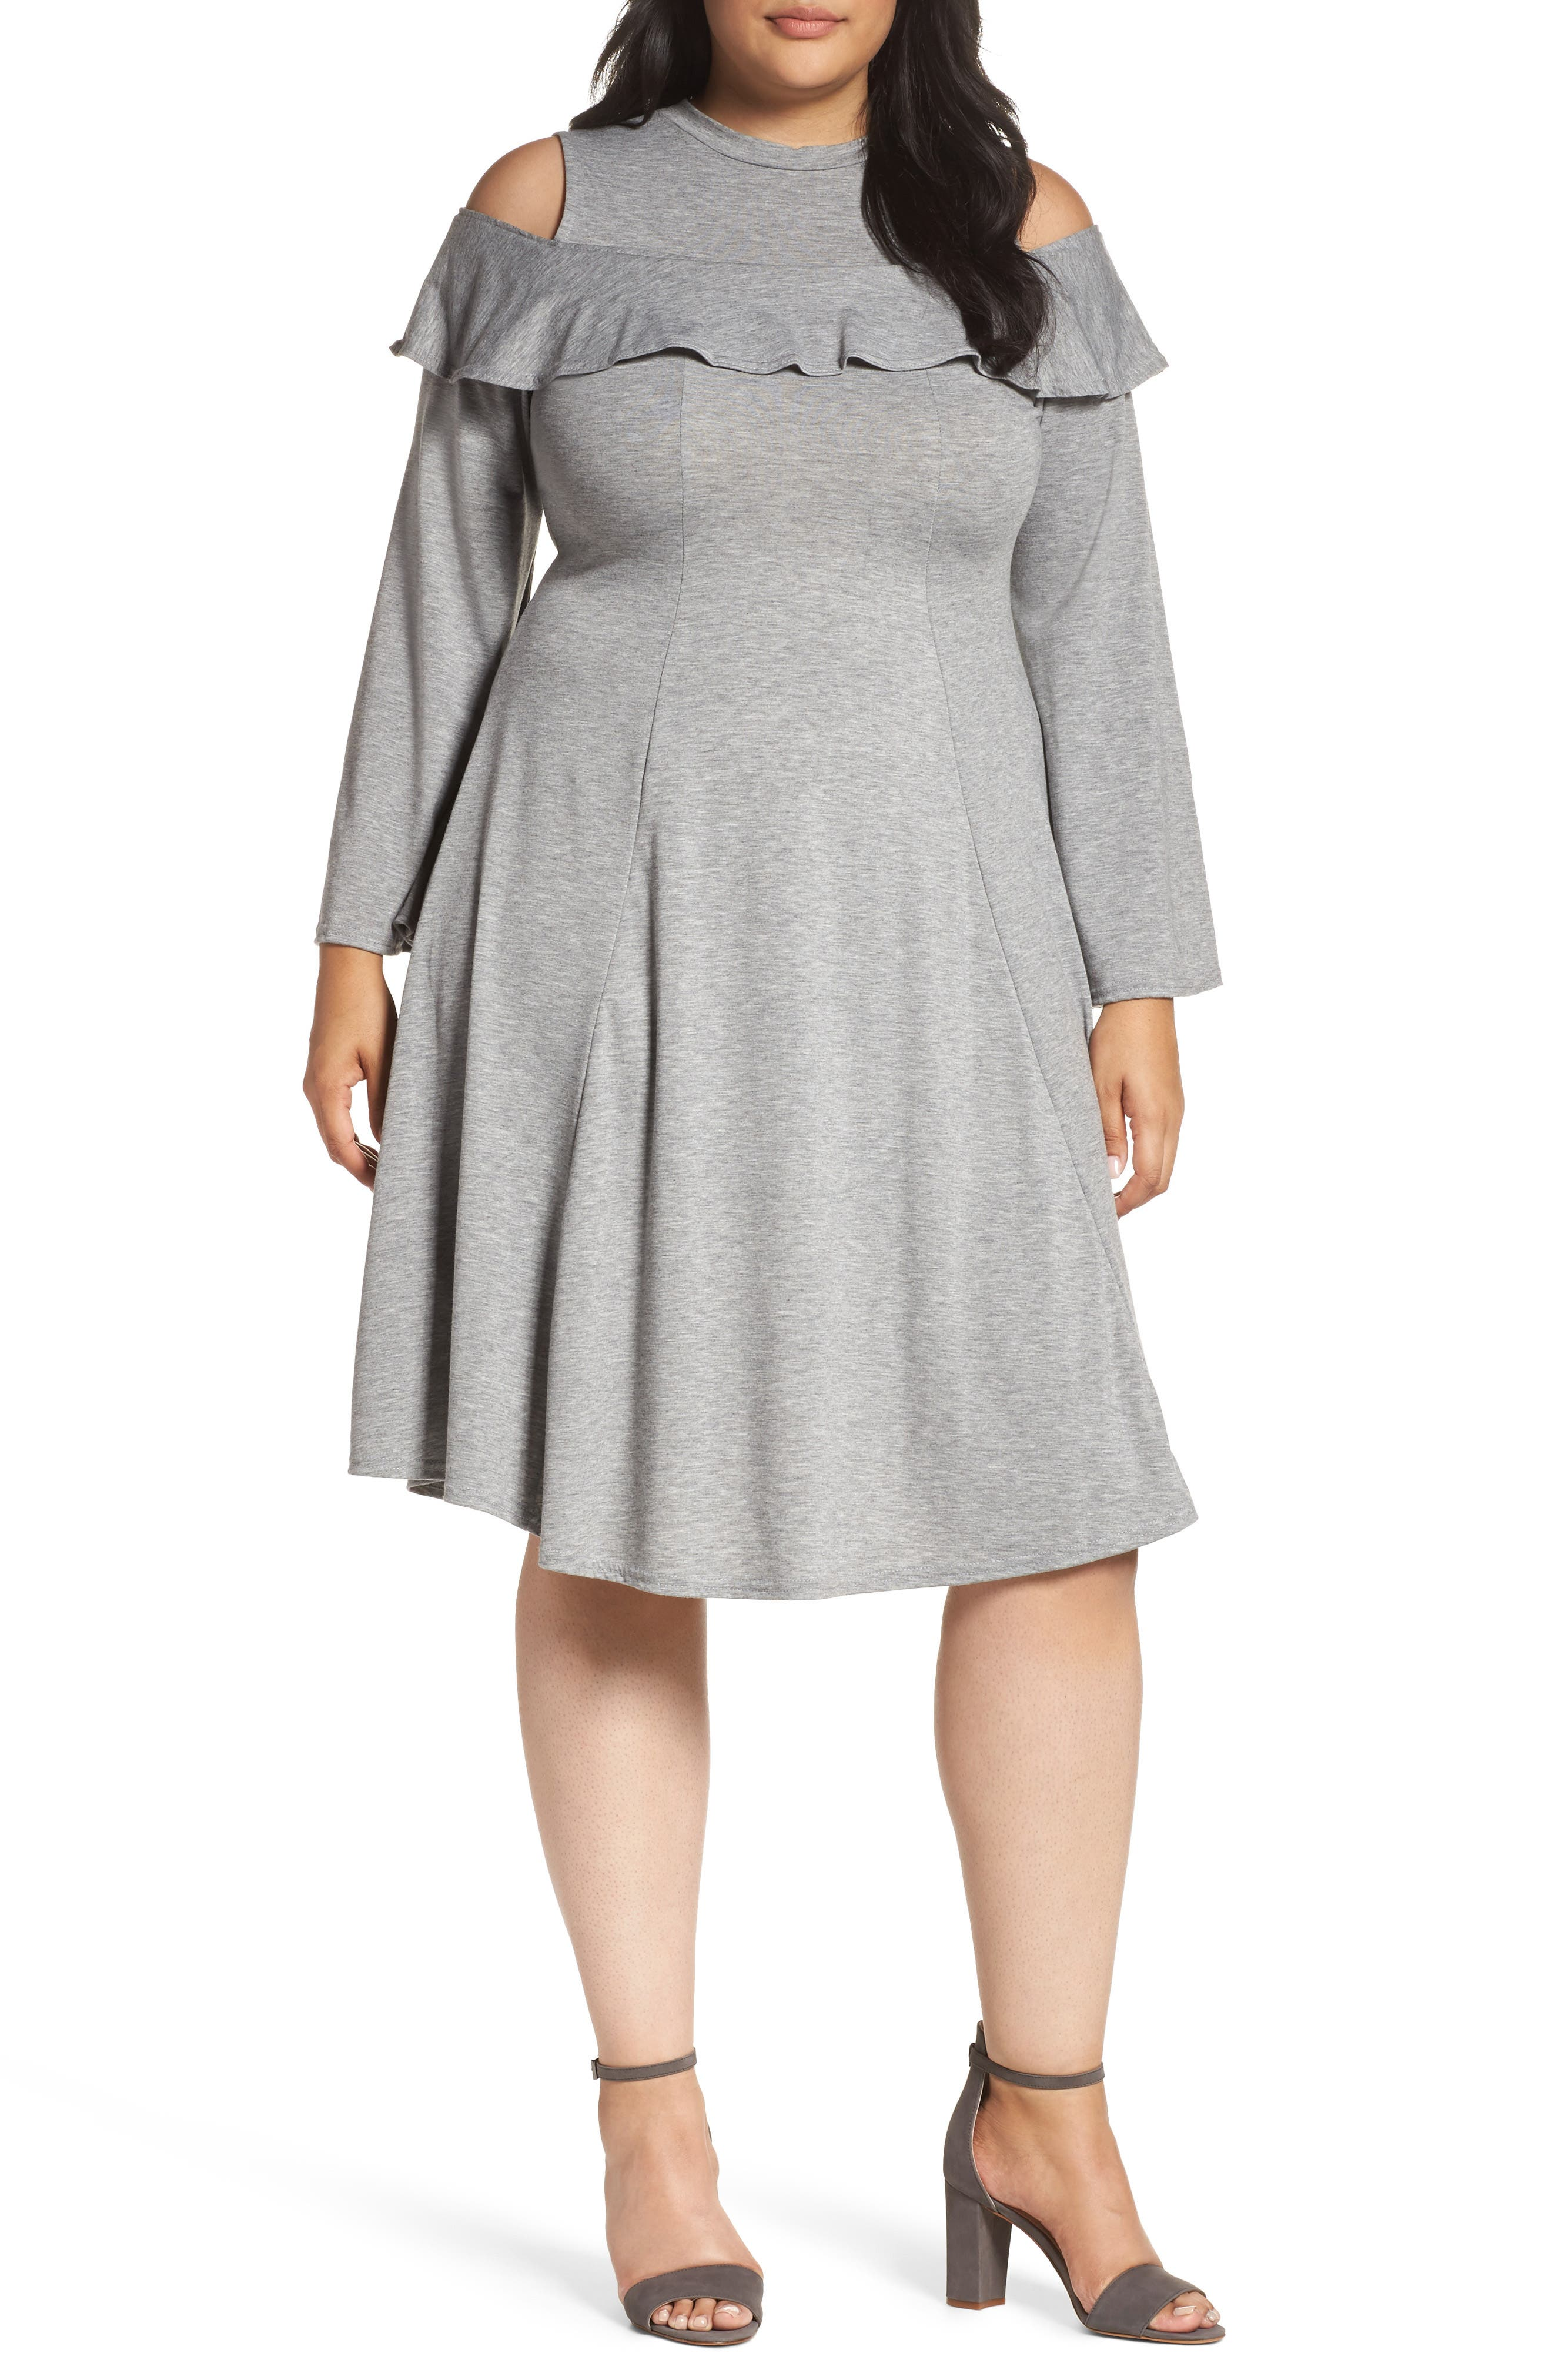 Alternate Image 1 Selected - LOST INK Jersey Fit & Flare Dress (Plus Size)